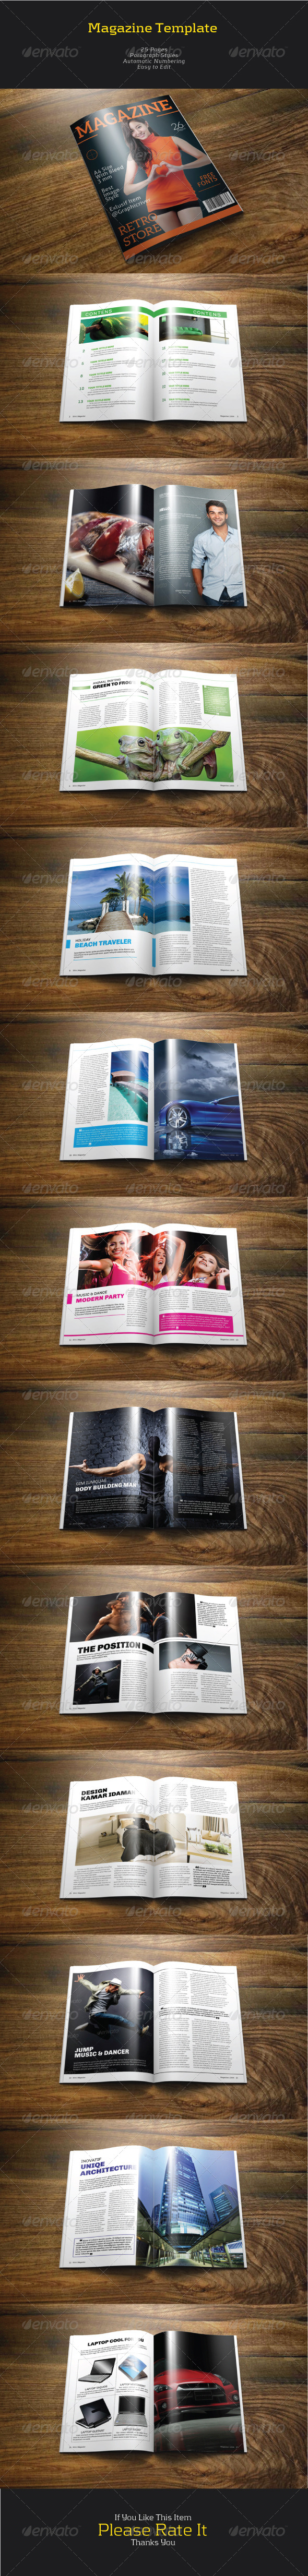 GraphicRiver Magazine Template 7245910